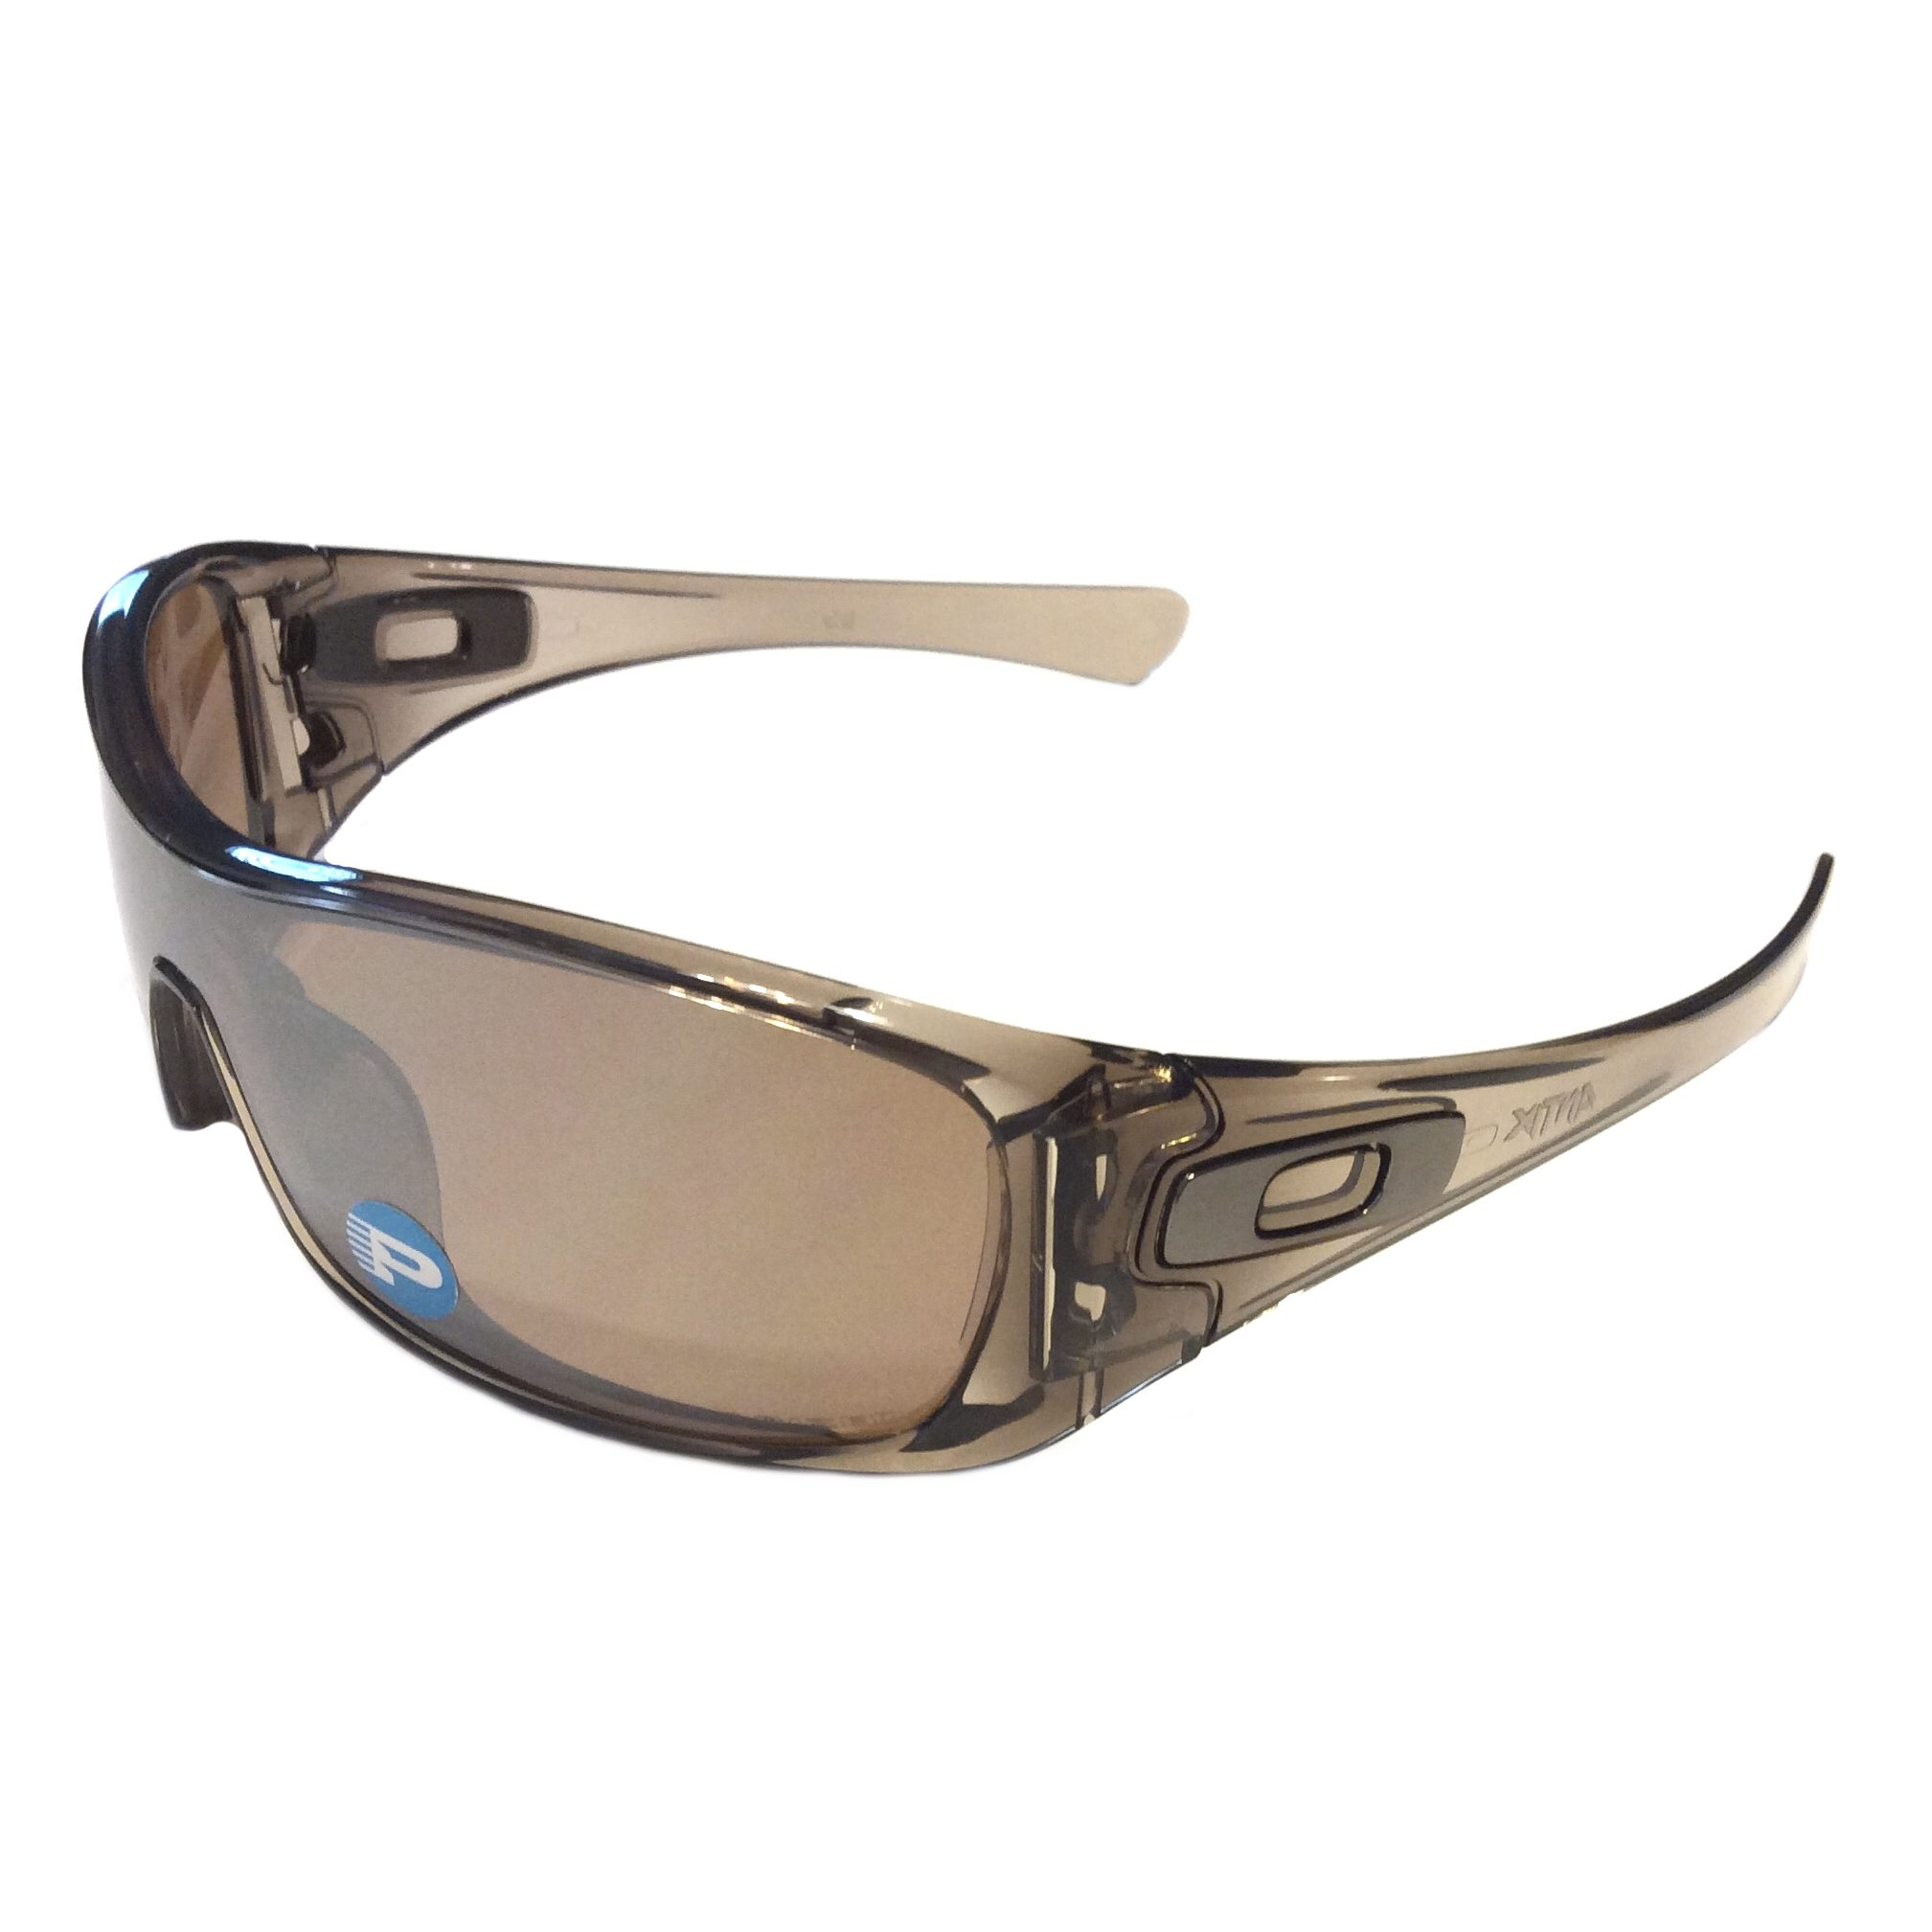 47e21c0e63 Oakley Antix Sunglasses Brown Smoke Tungsten Iridium Polarized ...